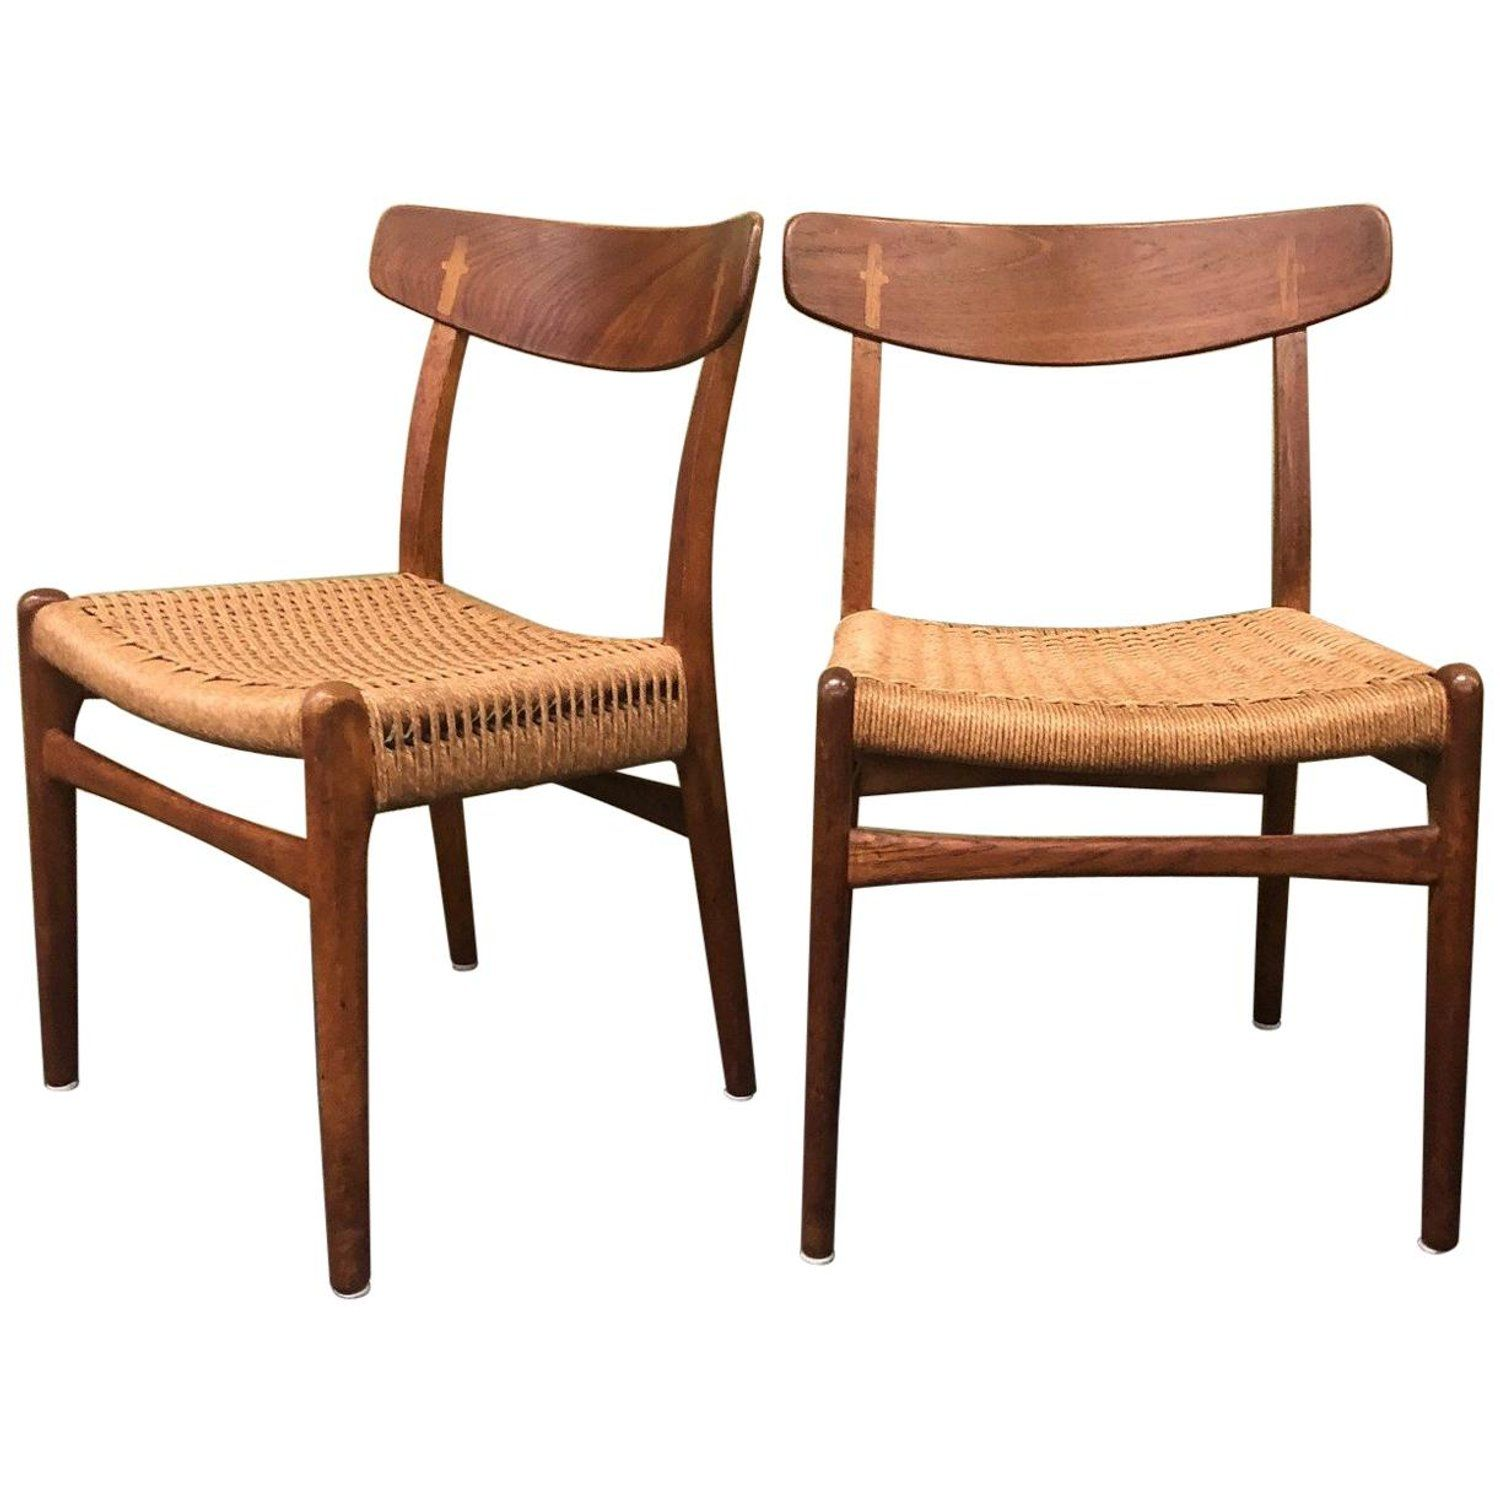 Pair Of Model Ch 23 Dining Chairs With Rope Seats By Hans Wegner